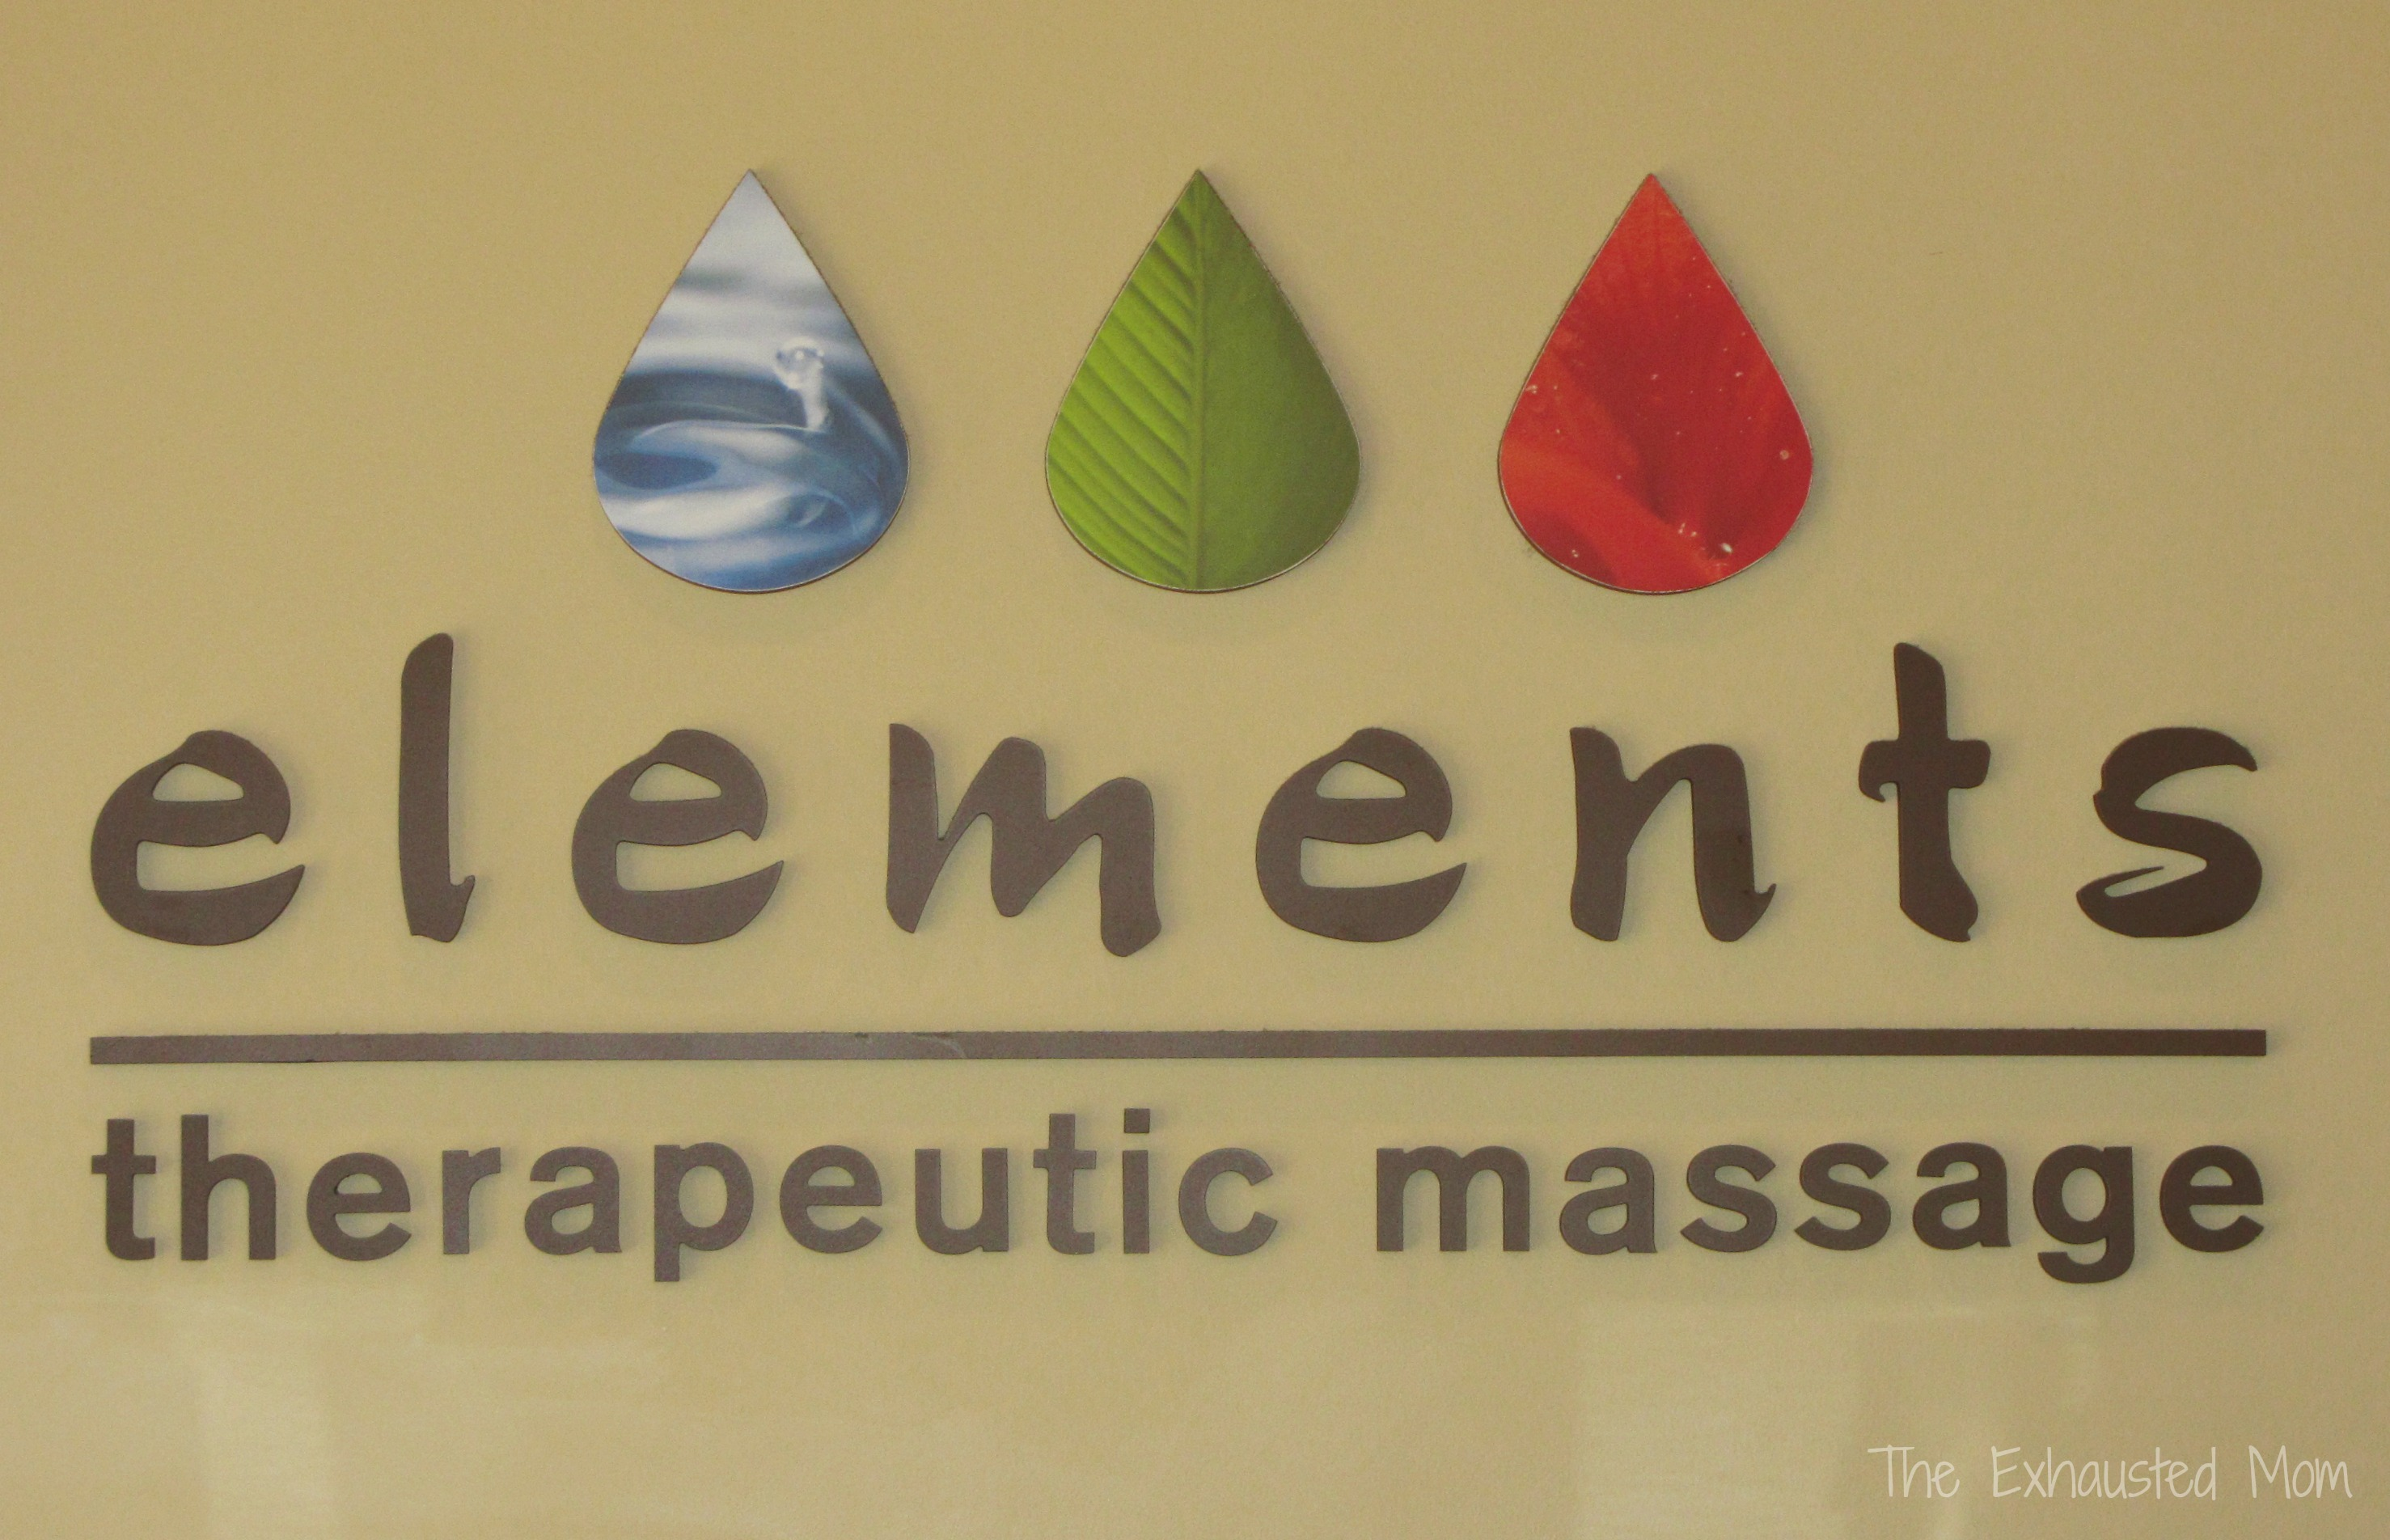 Relax at Elements Therapeutic Massage in Boca Raton